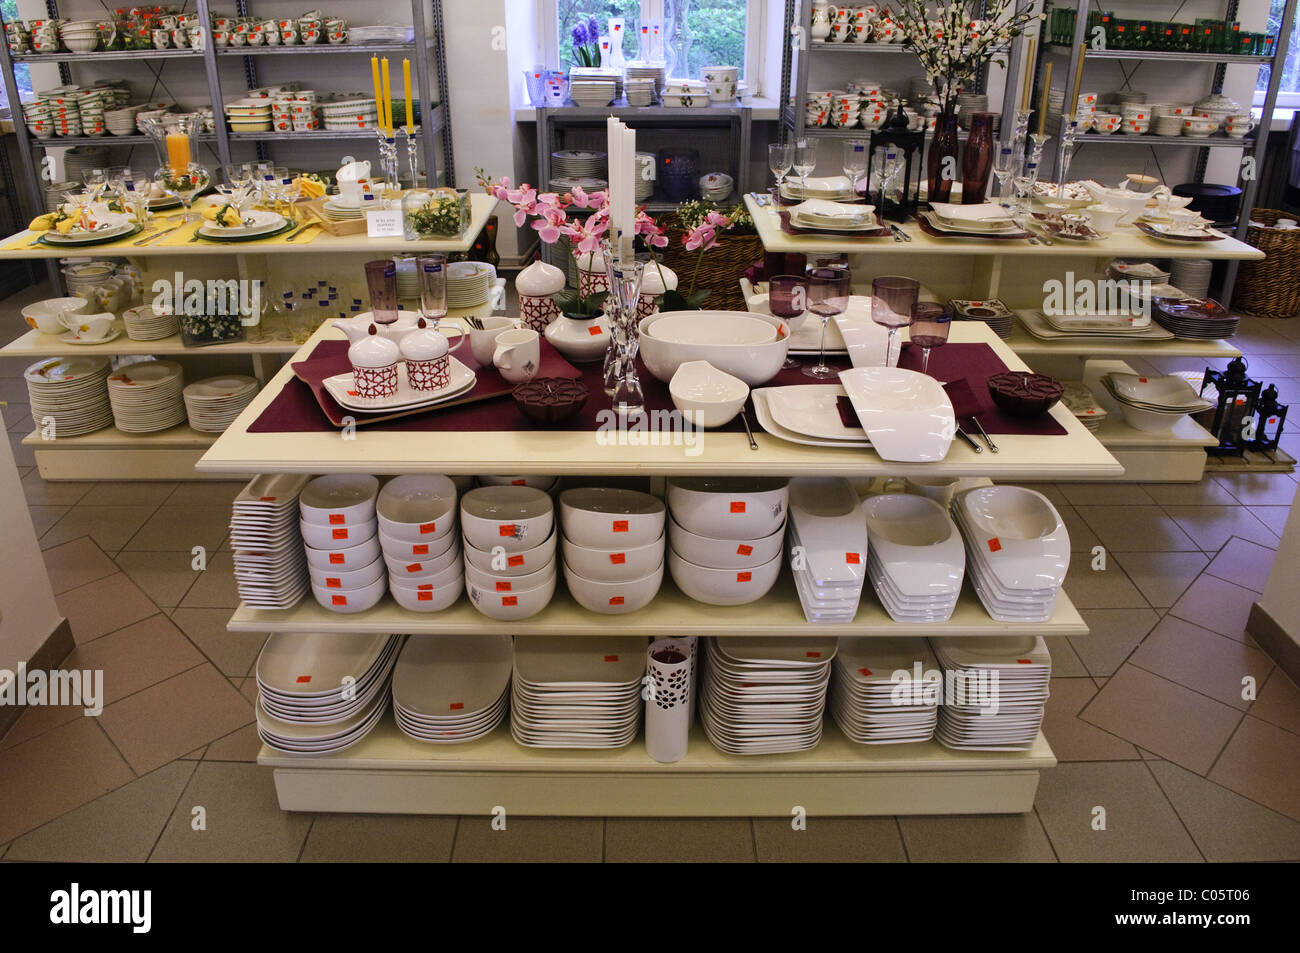 Villeroy boch china shop factory outlet at wadgassen germany stock photo royalty free image - Villeroy boch fliesen outlet ...